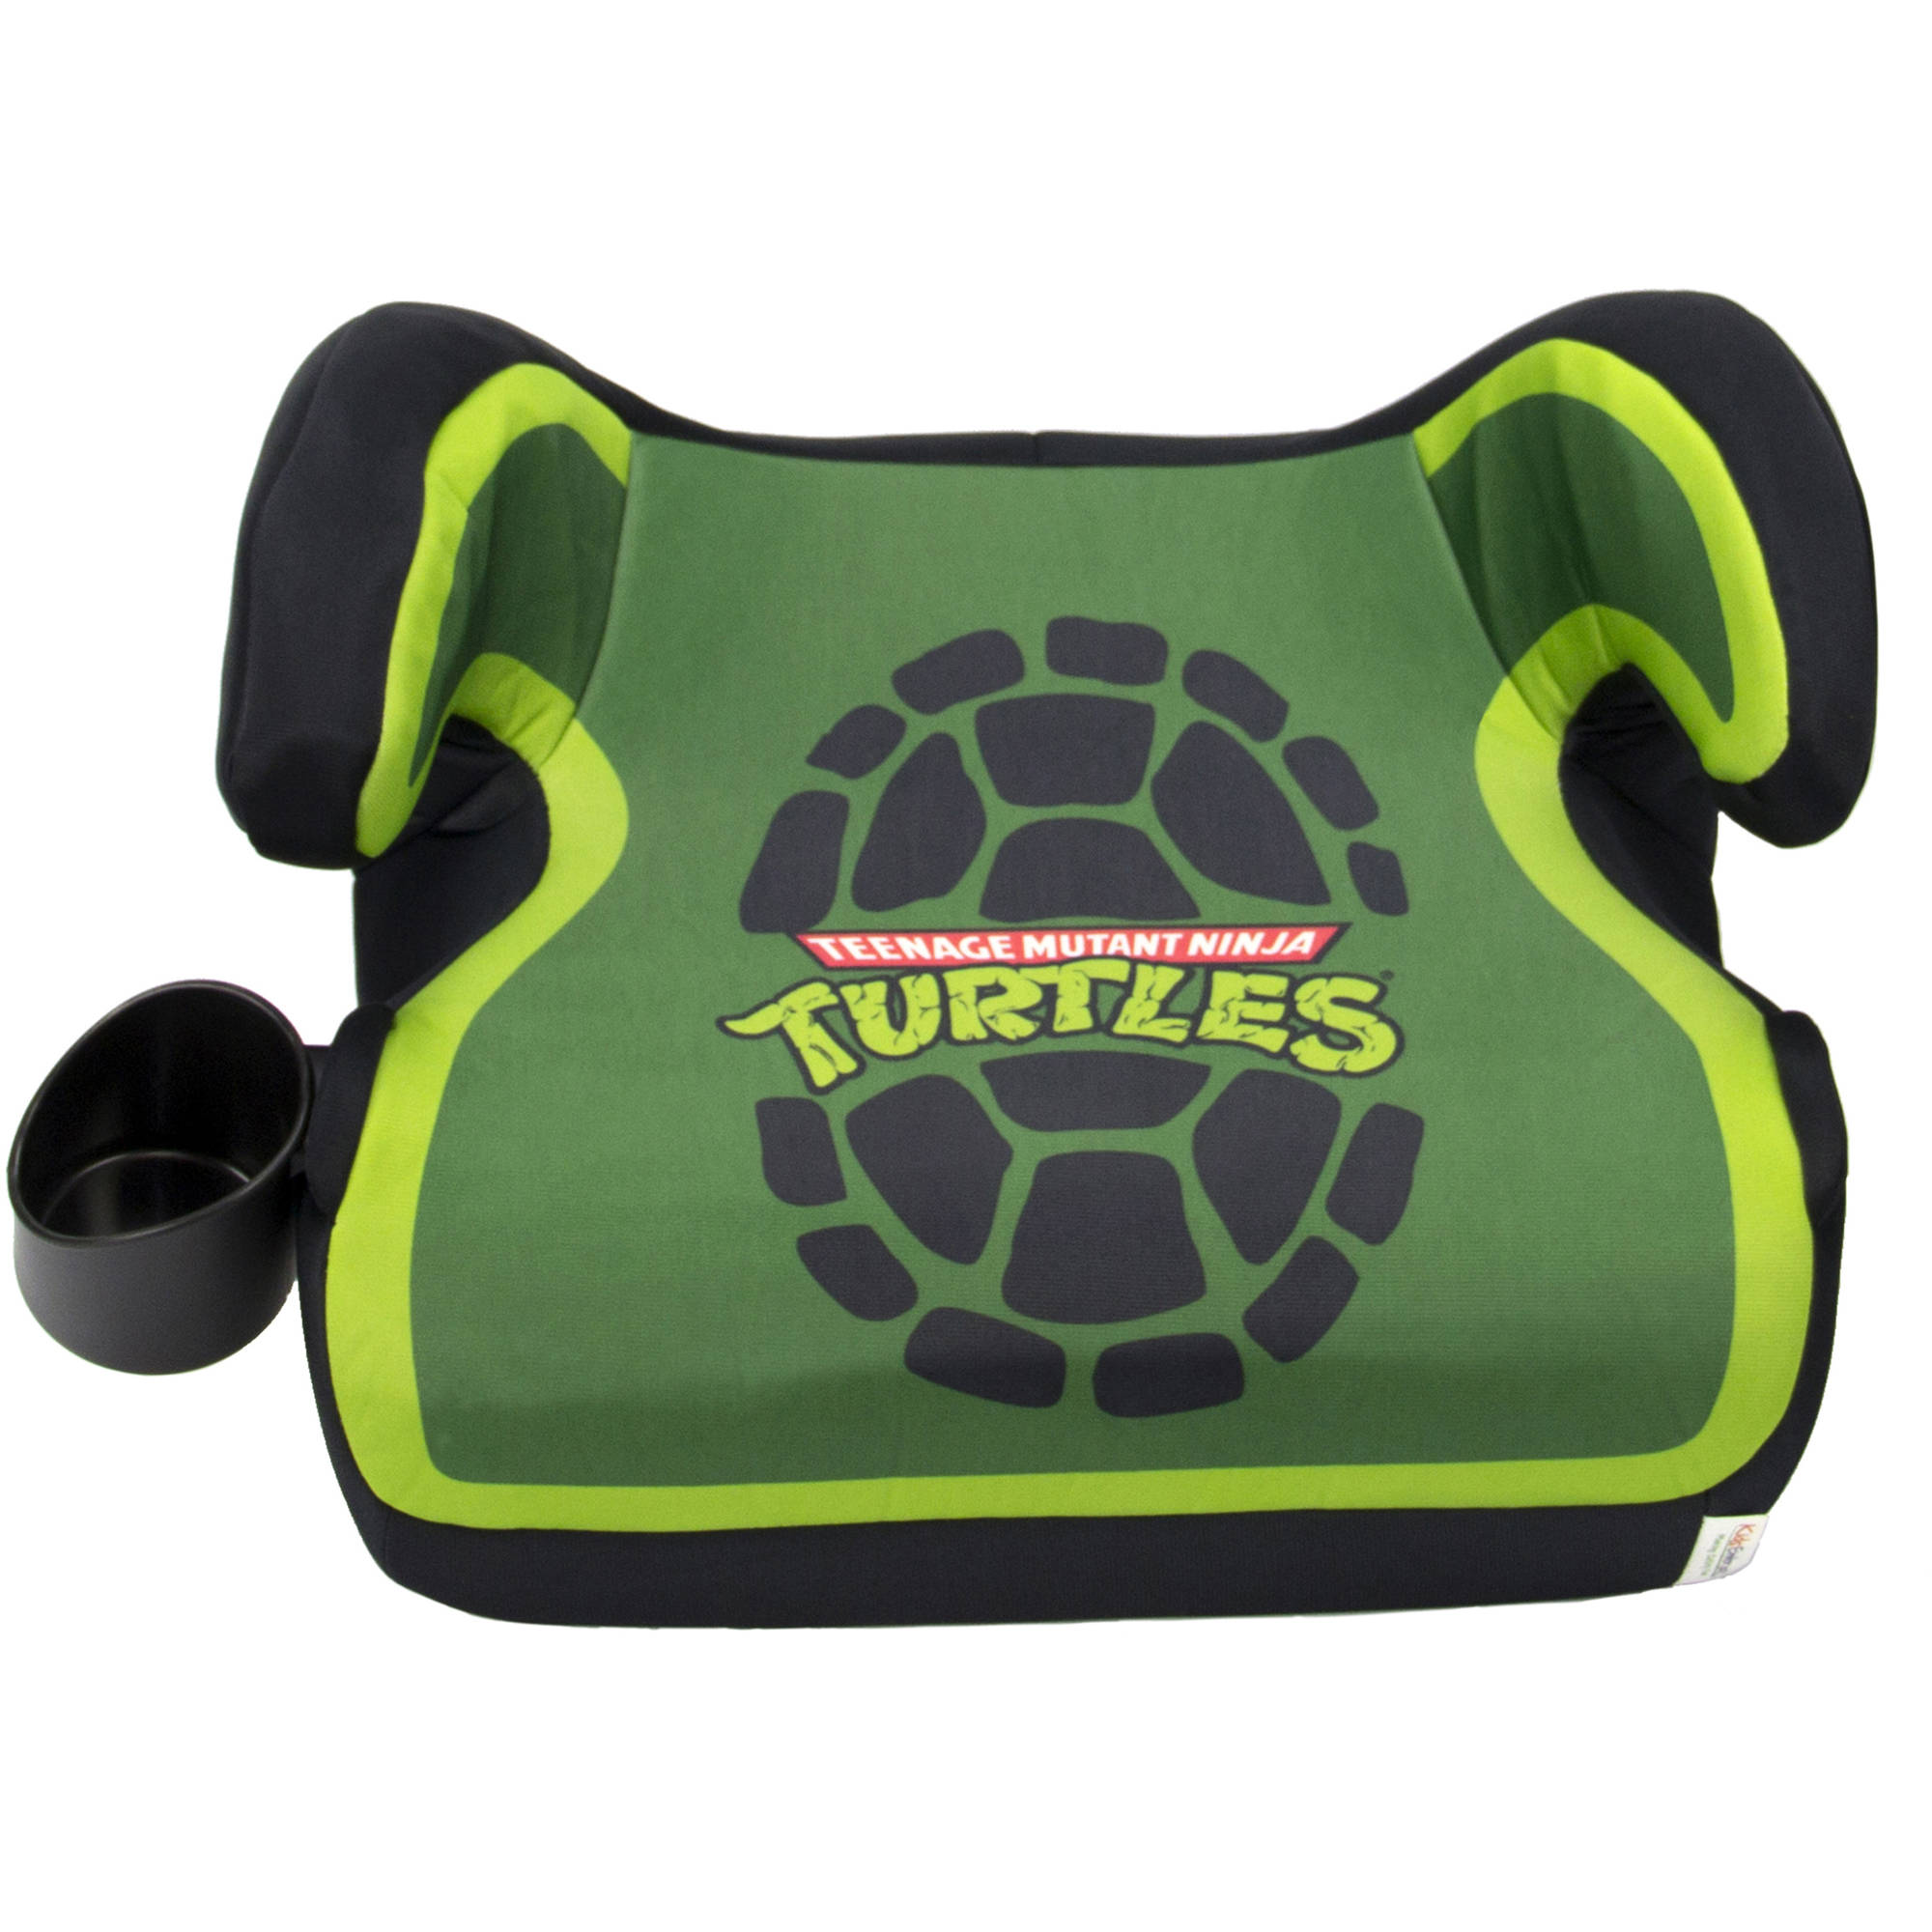 KidsEmbrace Fun-Ride Backless Booster Car Seat, Teenage Mutant Ninja Turtles